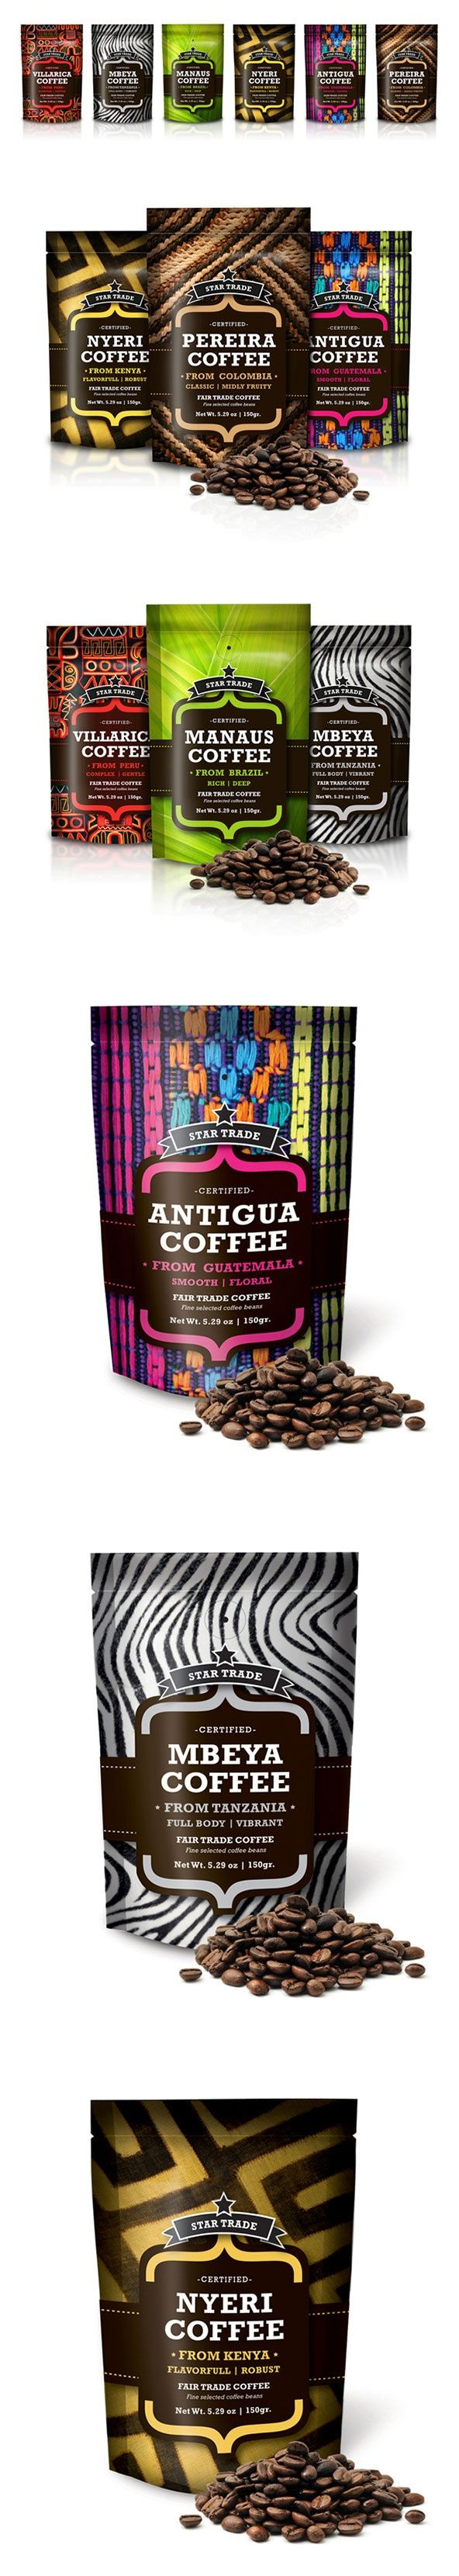 packaging de café diseño